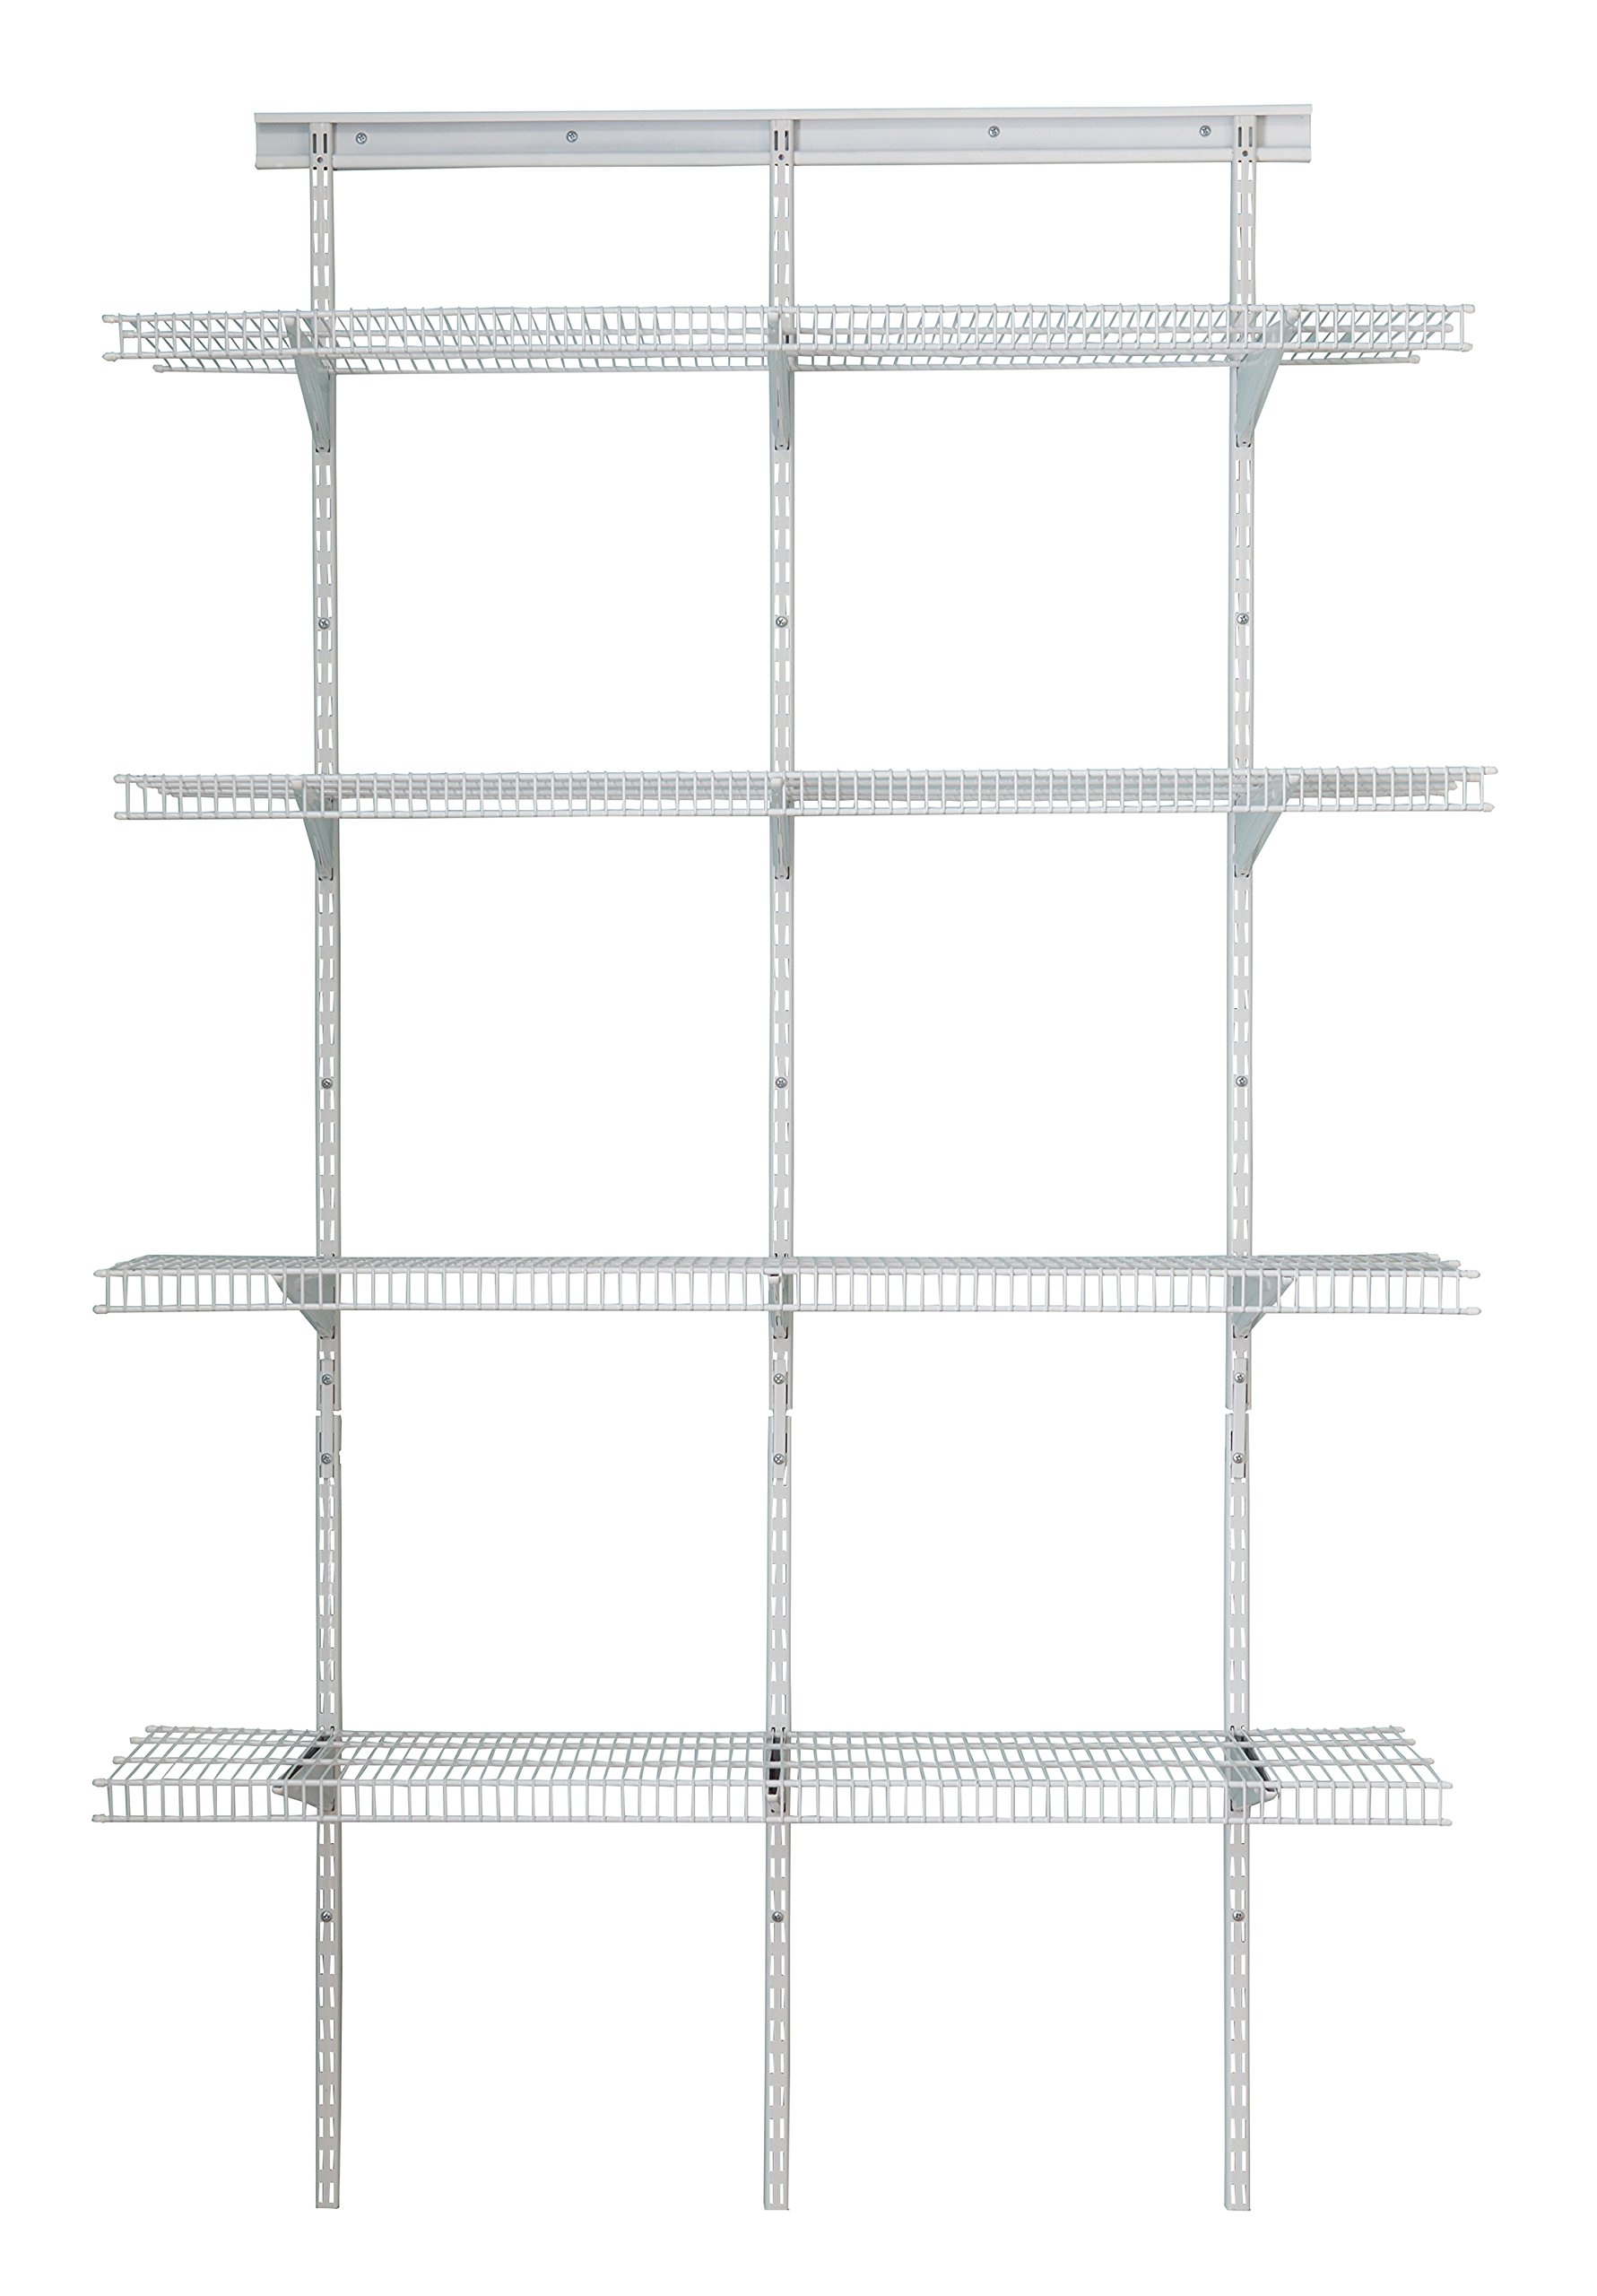 ClosetMaid 2845 ShelfTrack 4ft. Pantry Organizer Kit, White by ClosetMaid (Image #1)